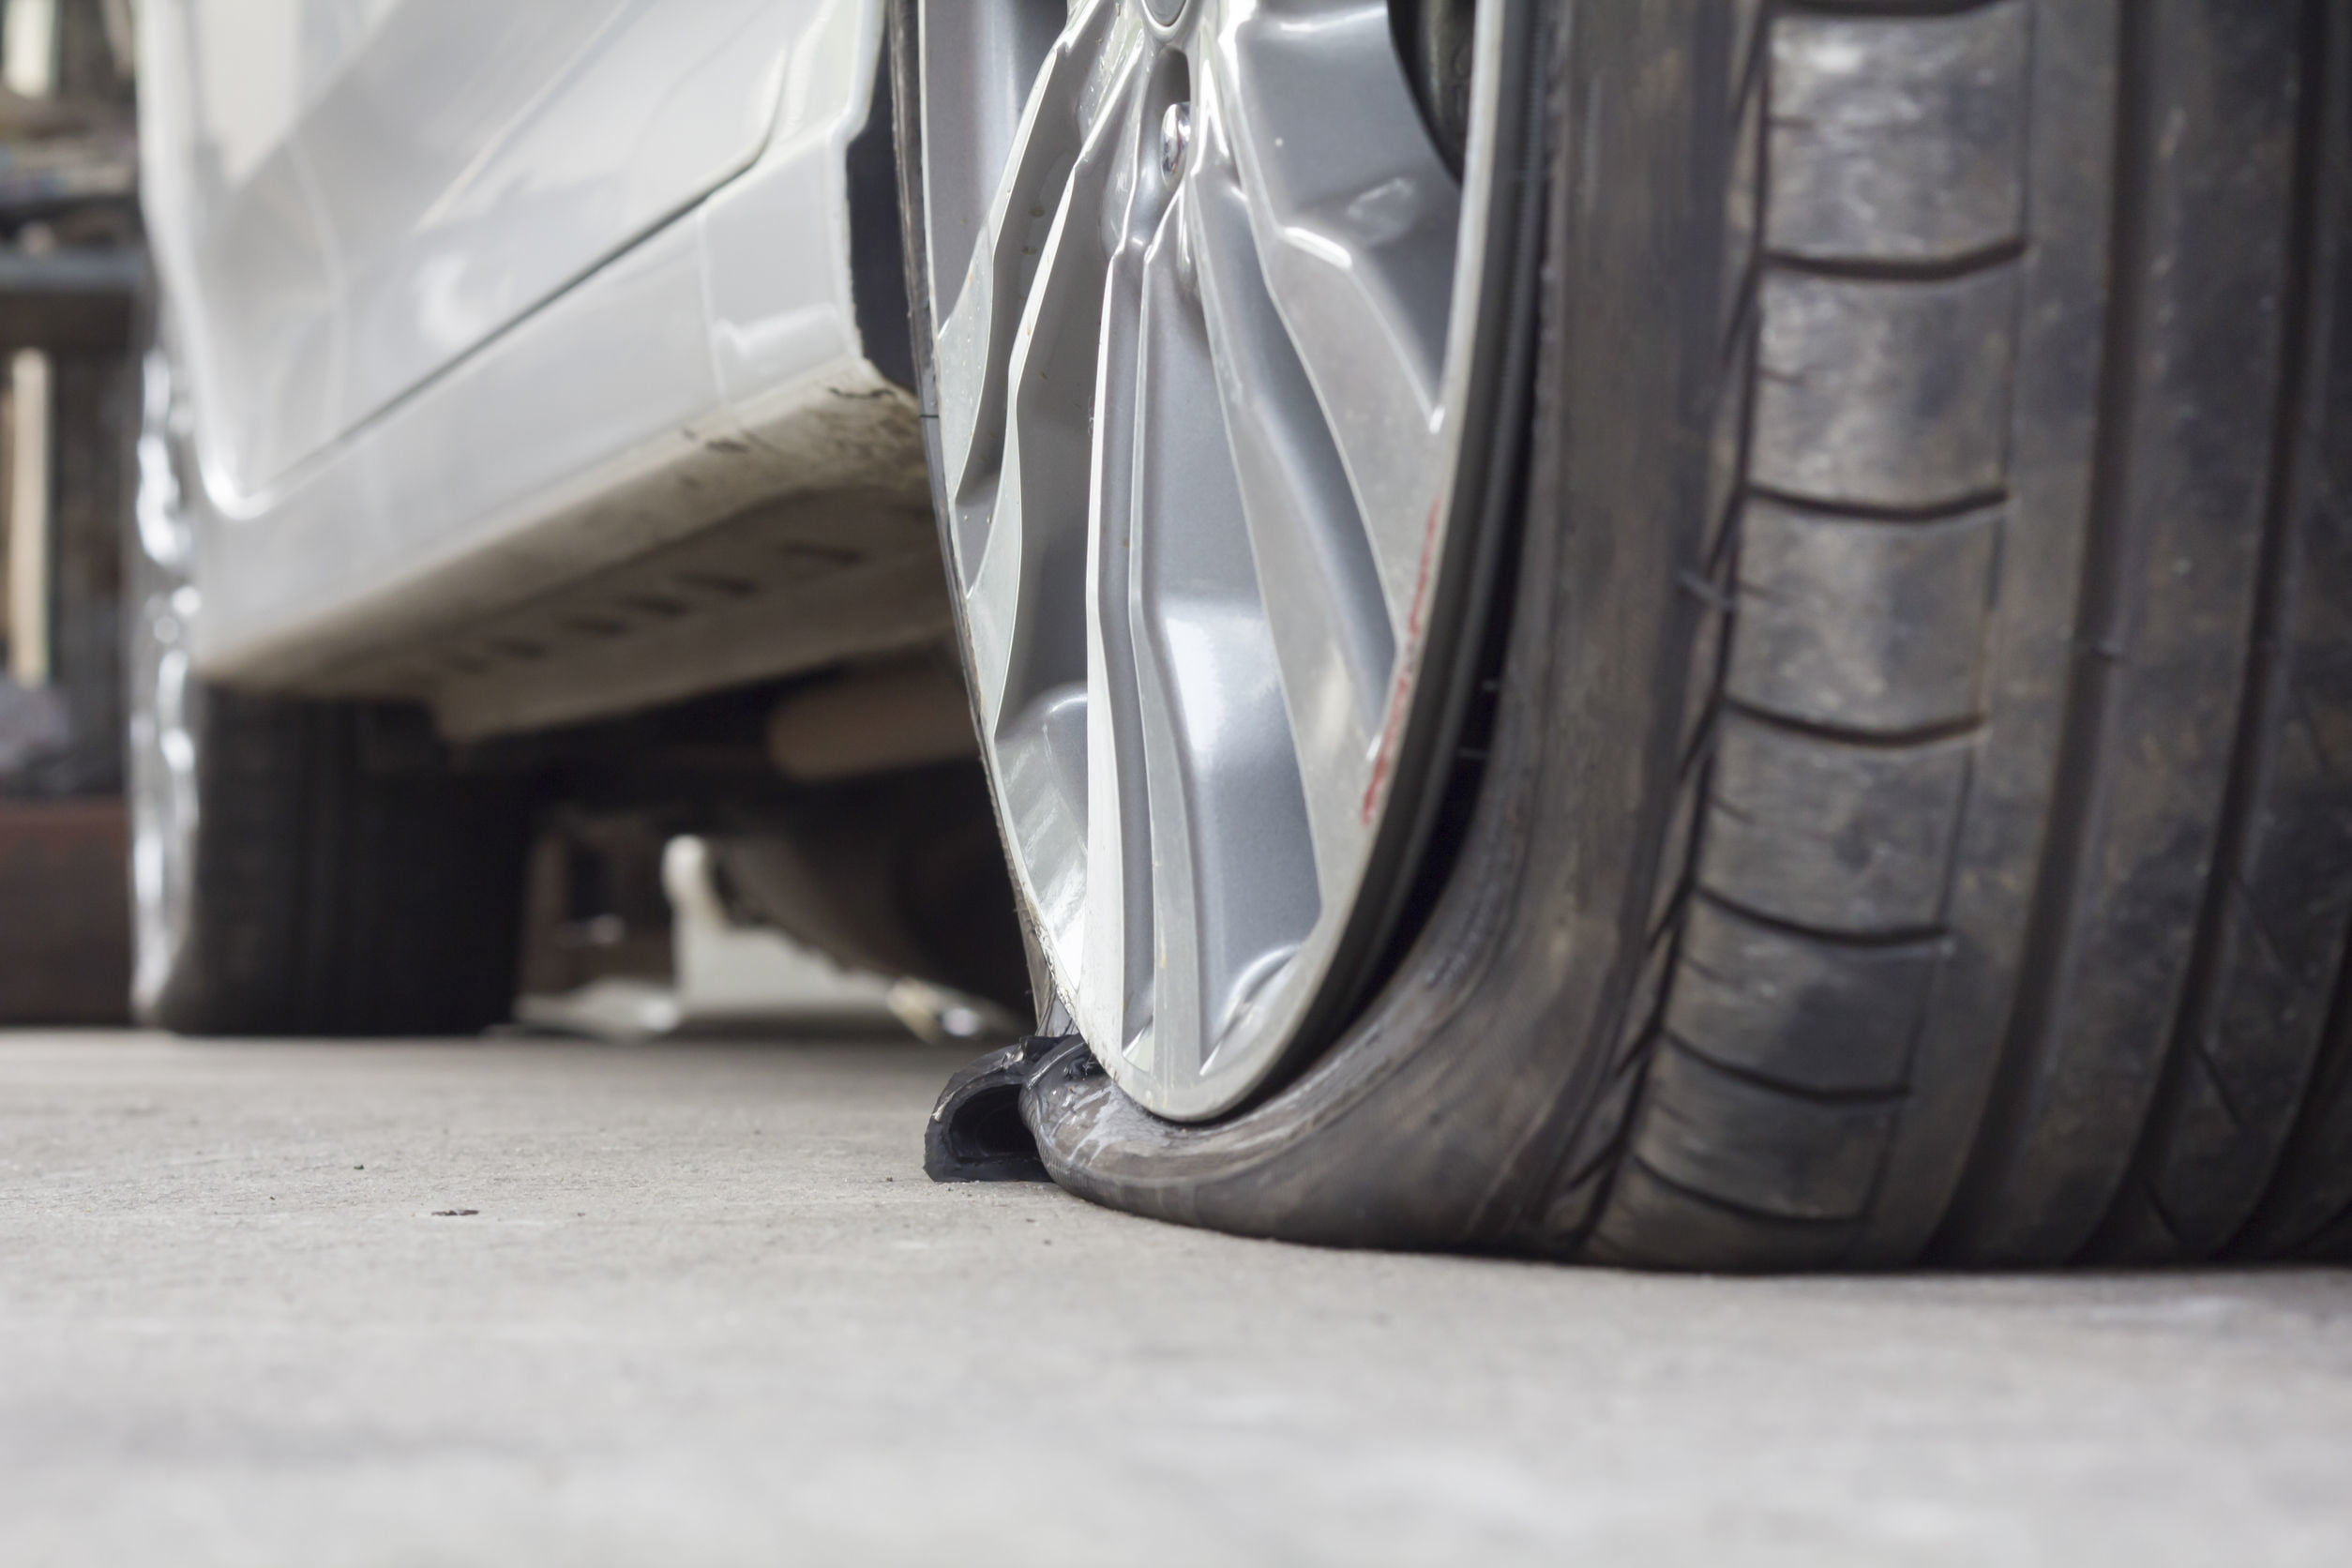 Buick LaCrosse: Using the Tire Sealant and Compressor Kit to Temporarily Seal and Inflate a Punctured Tire